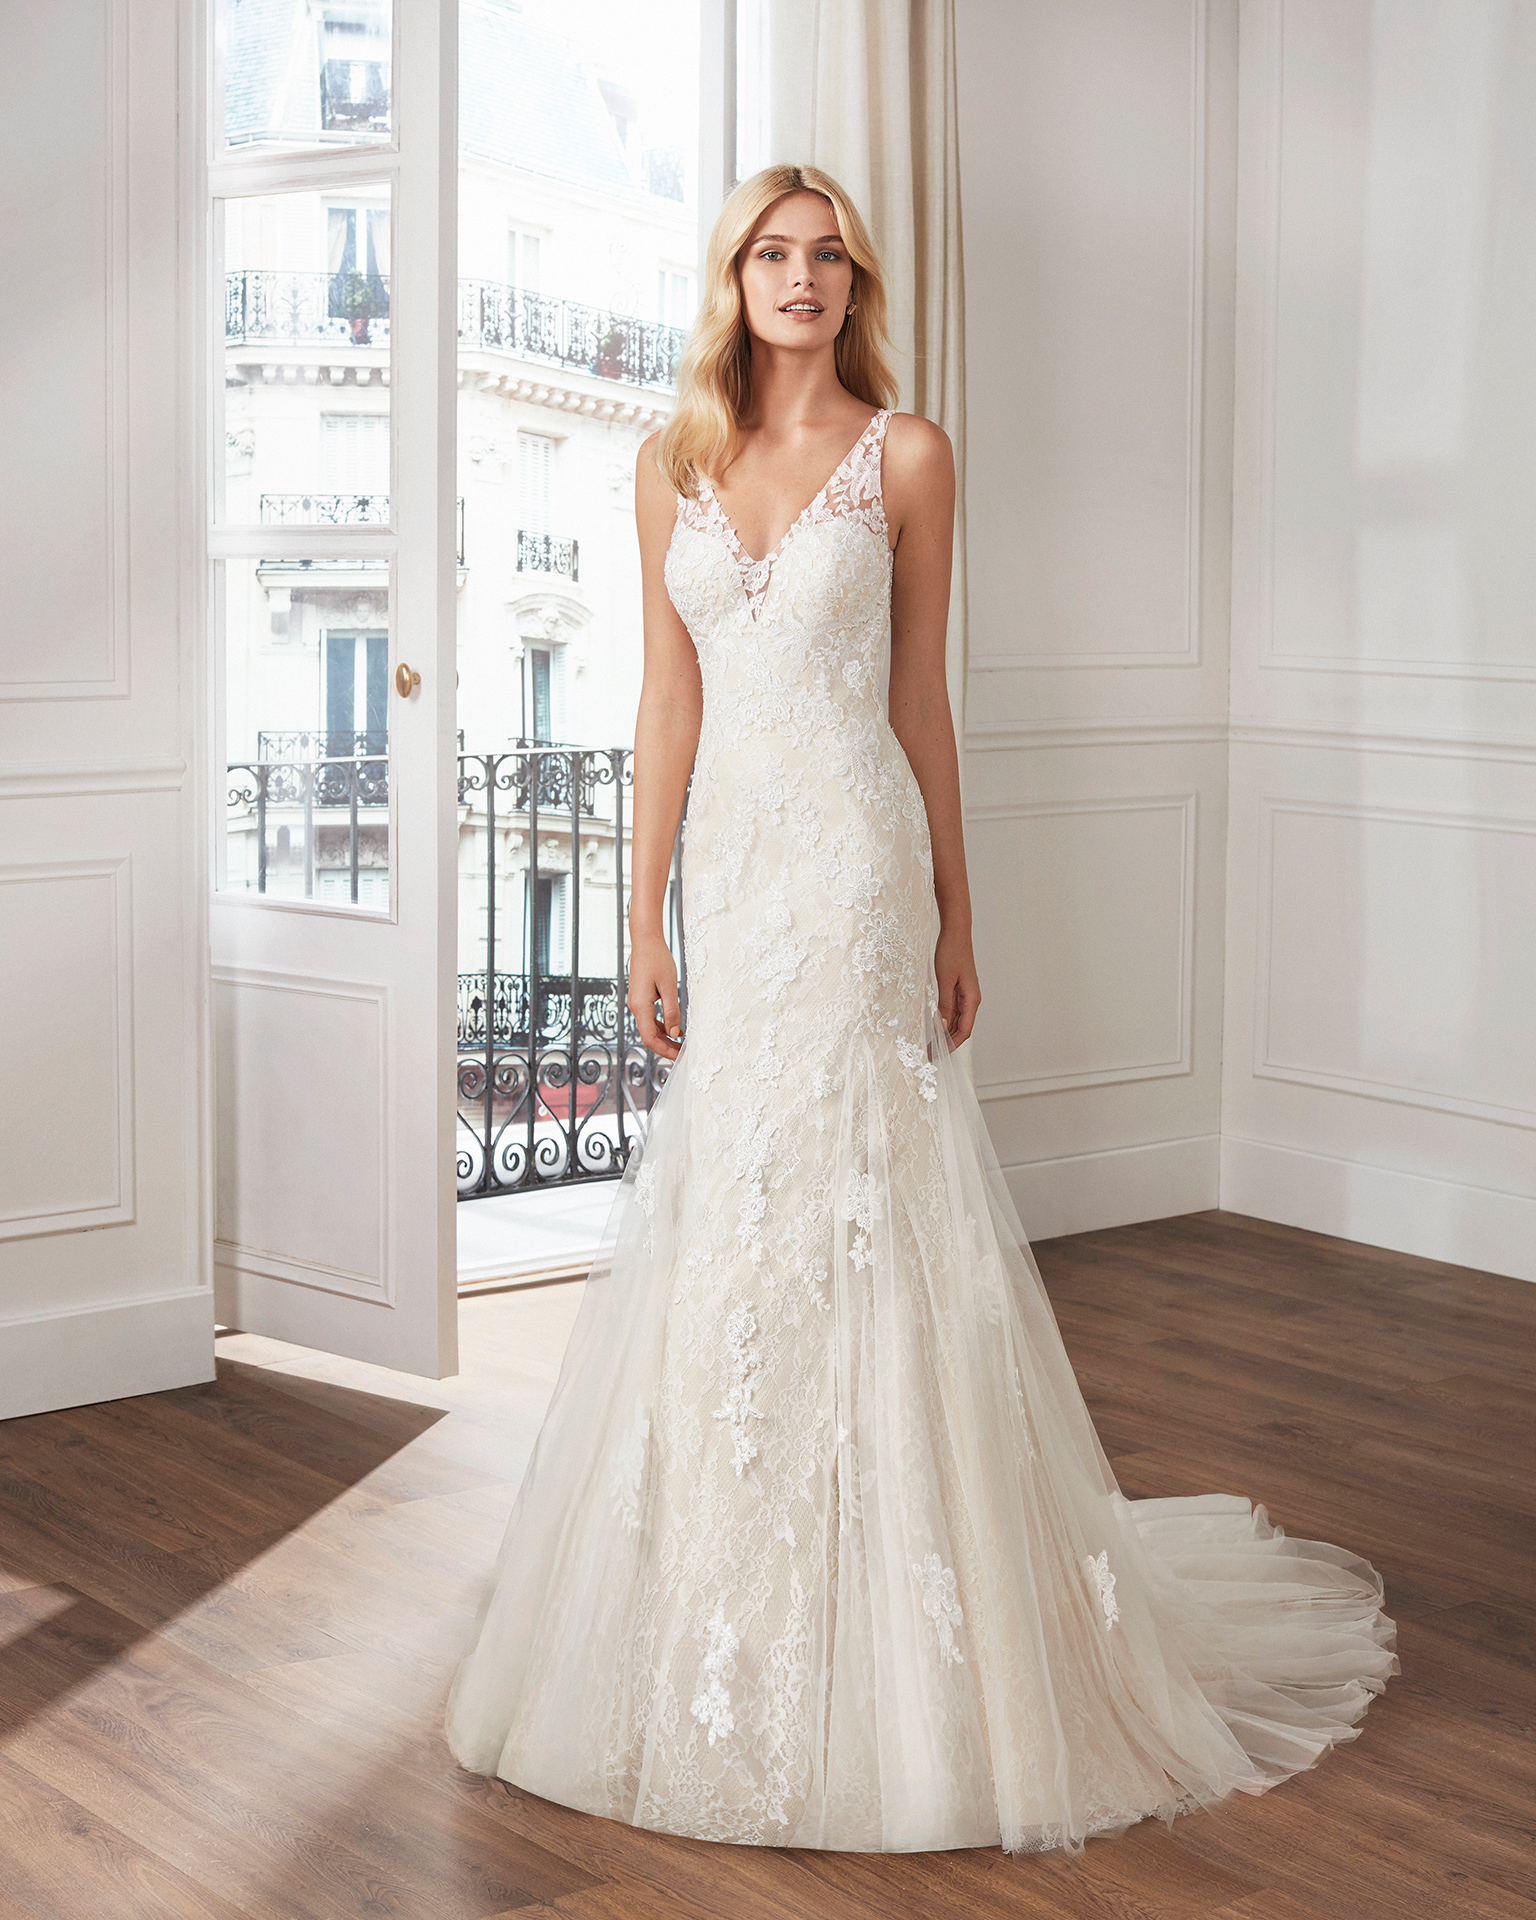 Mermaid-style wedding dress in beaded lace. V-neckline and teardrop back with appliquéd skirt. Available in natural and natural/champagne. 2019  Collection.